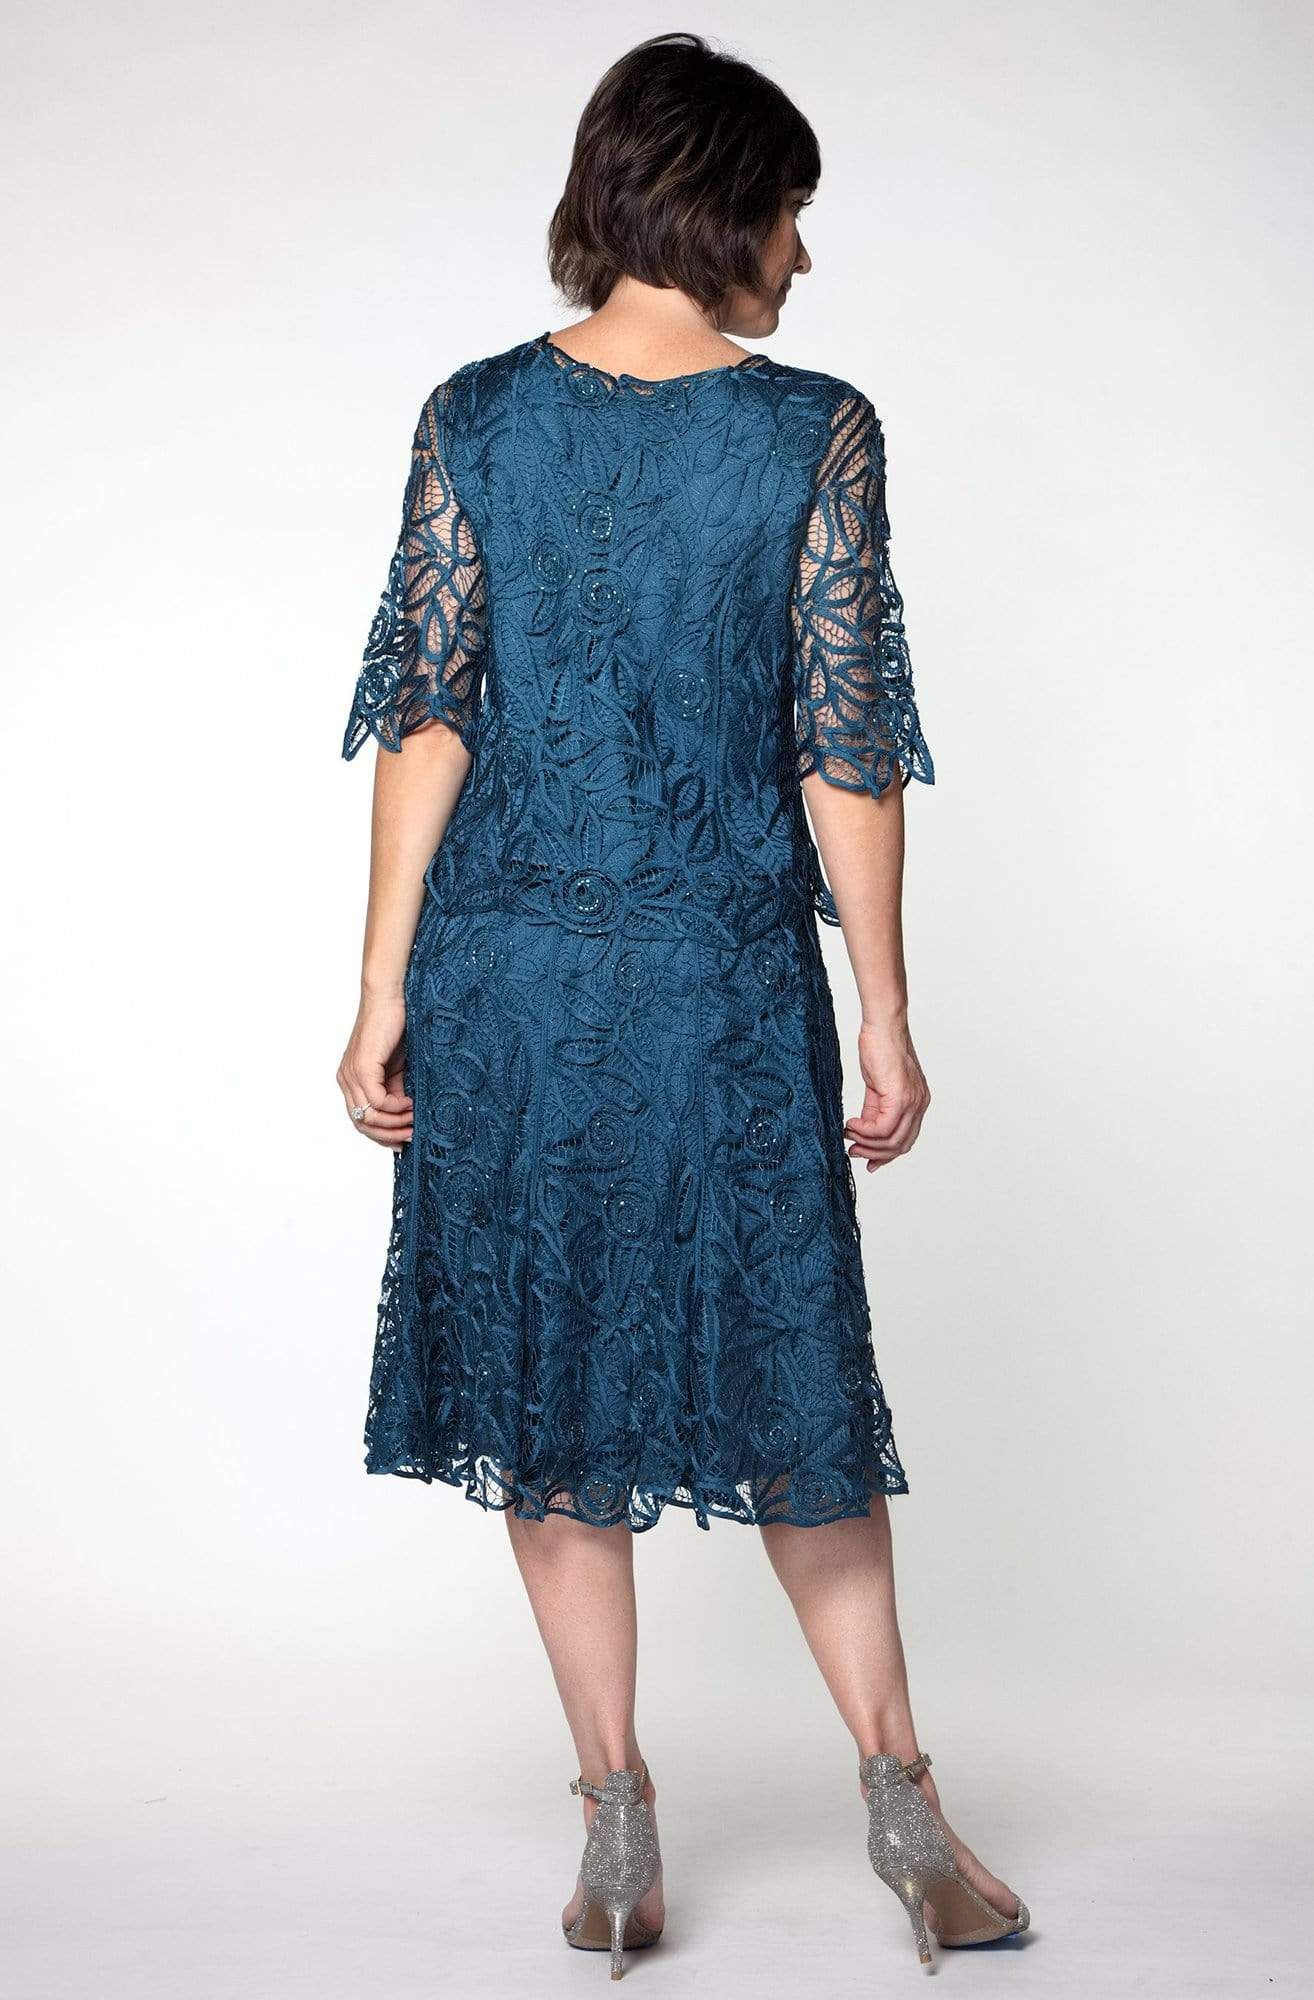 This lovely two pieces Soulmates short sleeve tunic with knee length skirt with hand-embroidered and crocheted and shimmering beads gives younger and chic looks one of Soulmates best spring/summer collection dress. 100% Silk Hand-made Fully-lined Dry Clean Imported